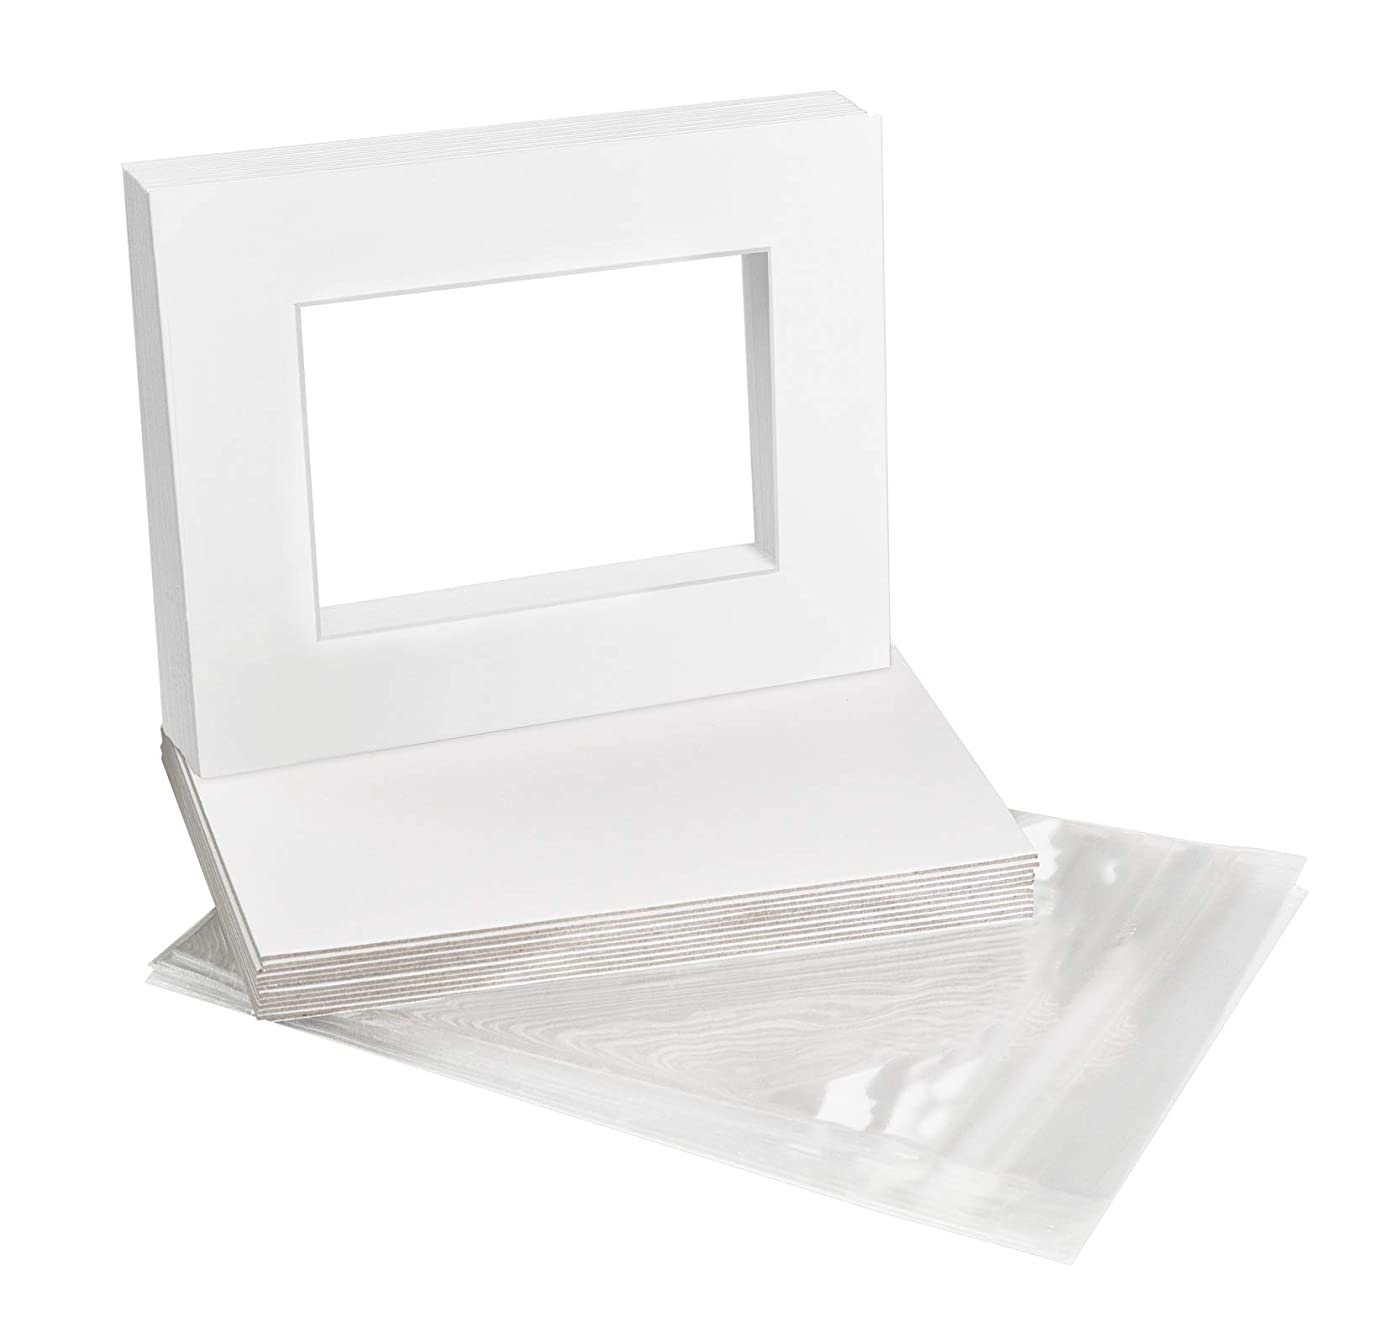 Golden State Art, Acid-Free Pre-Cut 8x10 White Picture Mat Sets. Includes Pack of 10 White Core Bevel Cut Mats for 5x7 Photos, 10 Backing Boards and 10 Crystal Clear Plastic Sleeves Bags